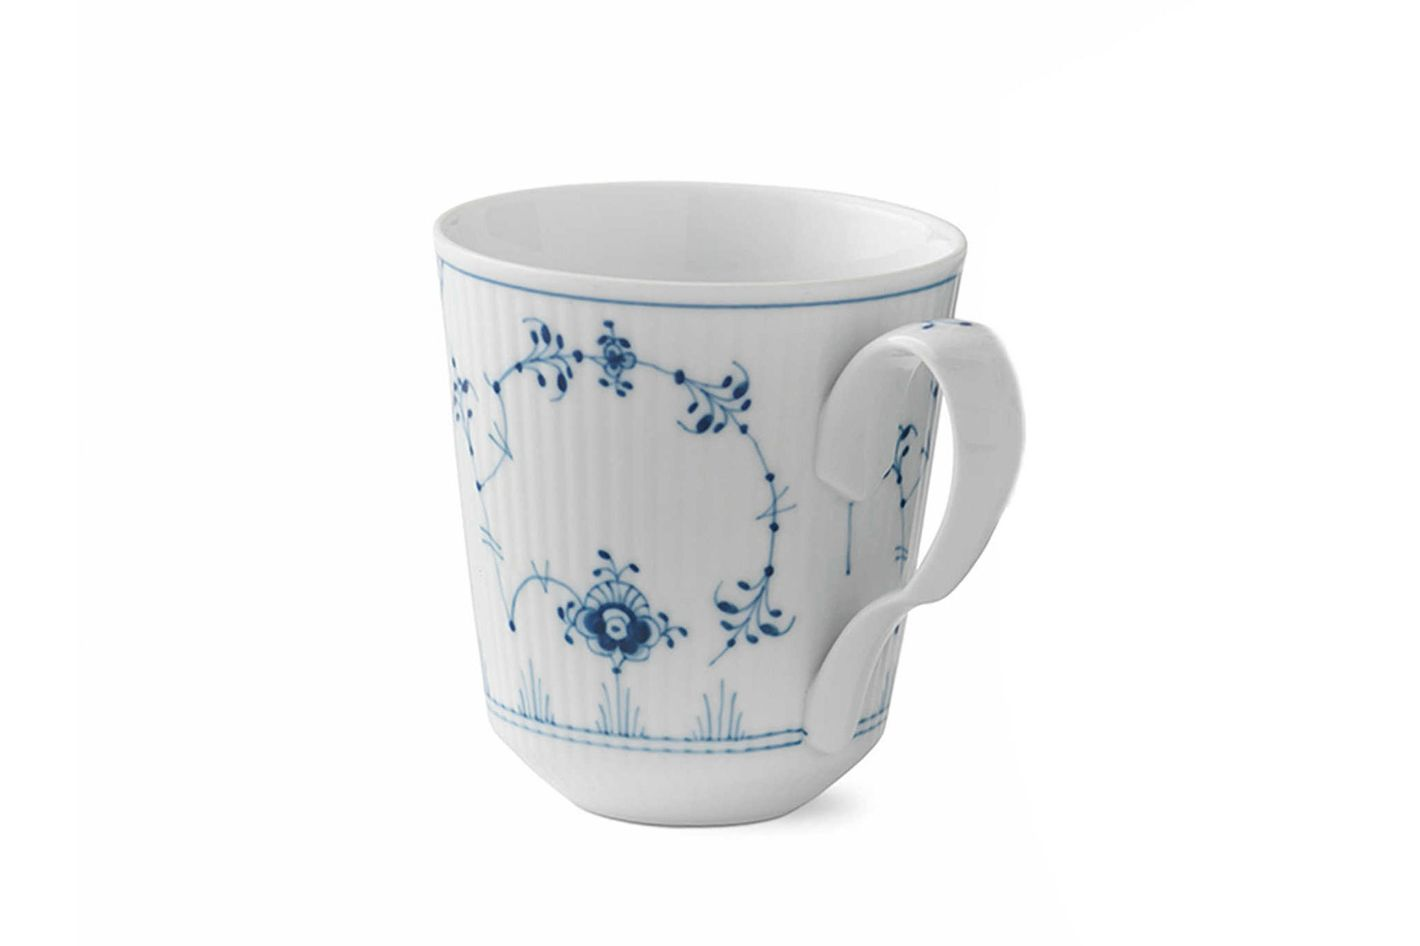 Royal Copenhagen Fluted Plain Mugs in Blue (Set of 2)